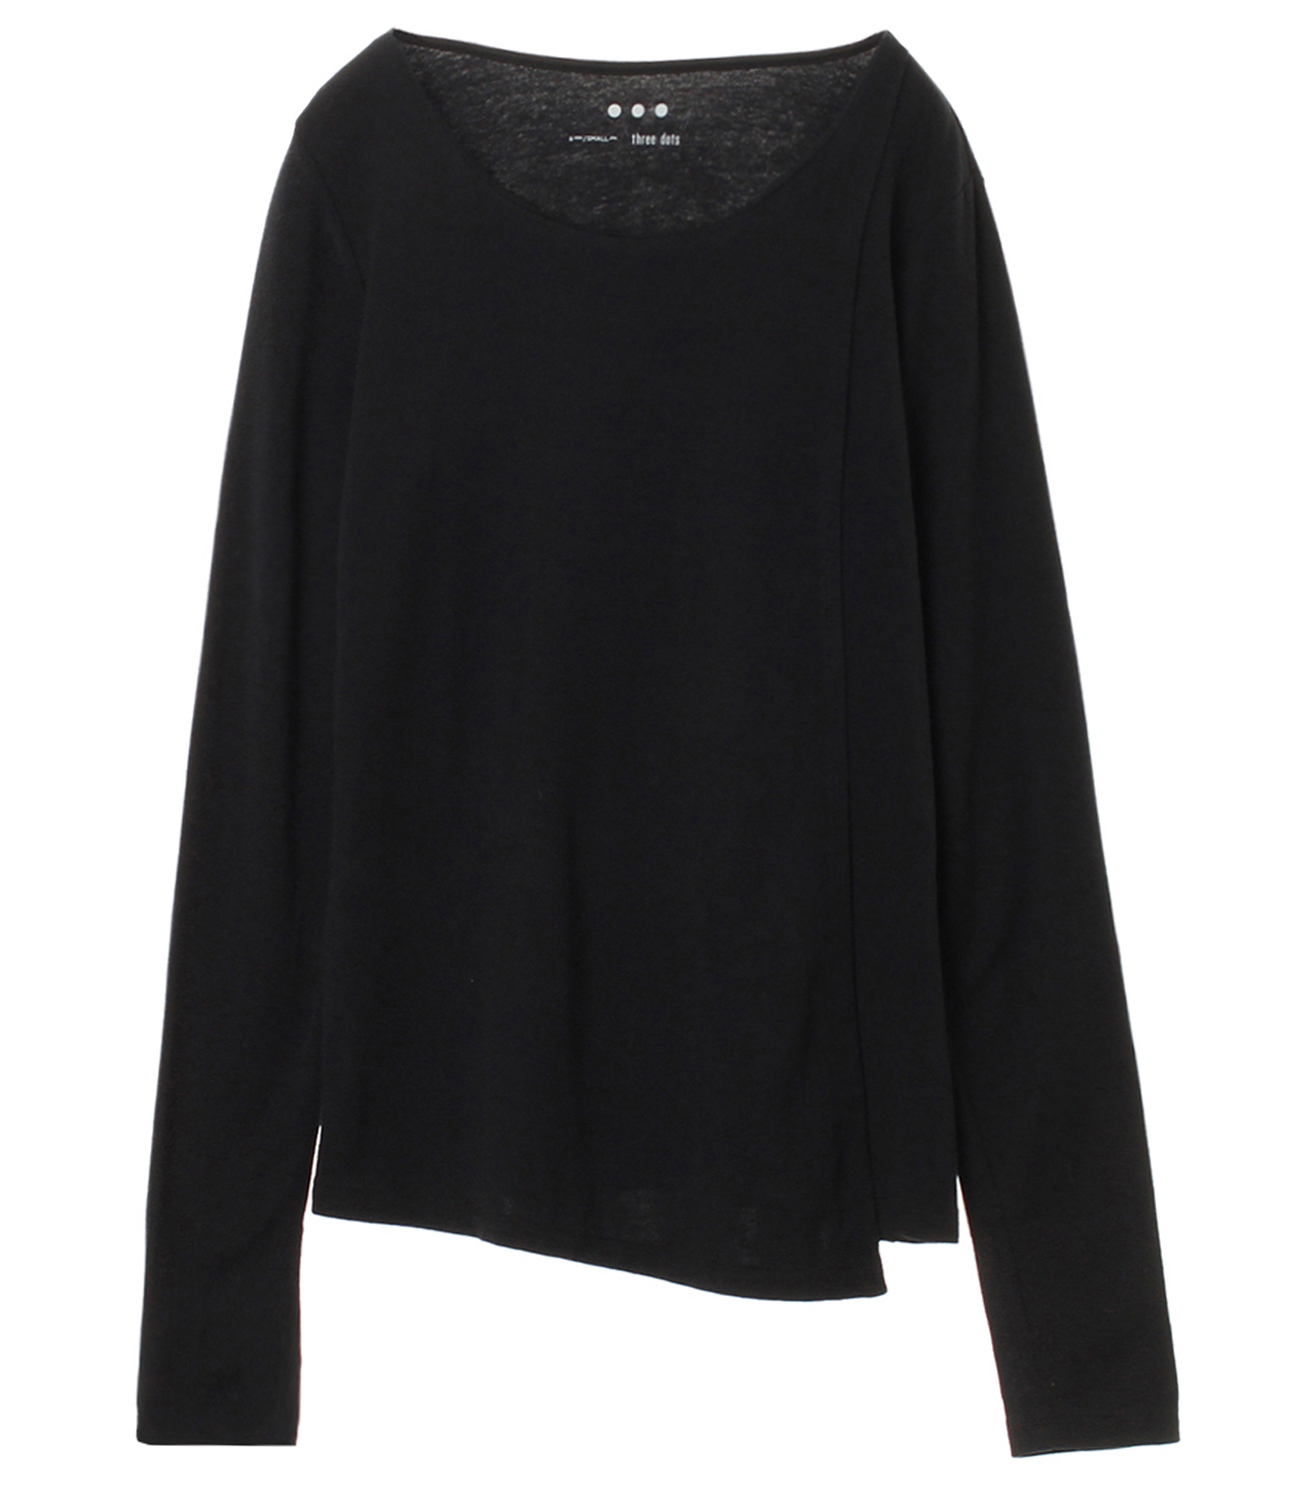 Sustainable jersey l/s layered t 詳細画像 black 1